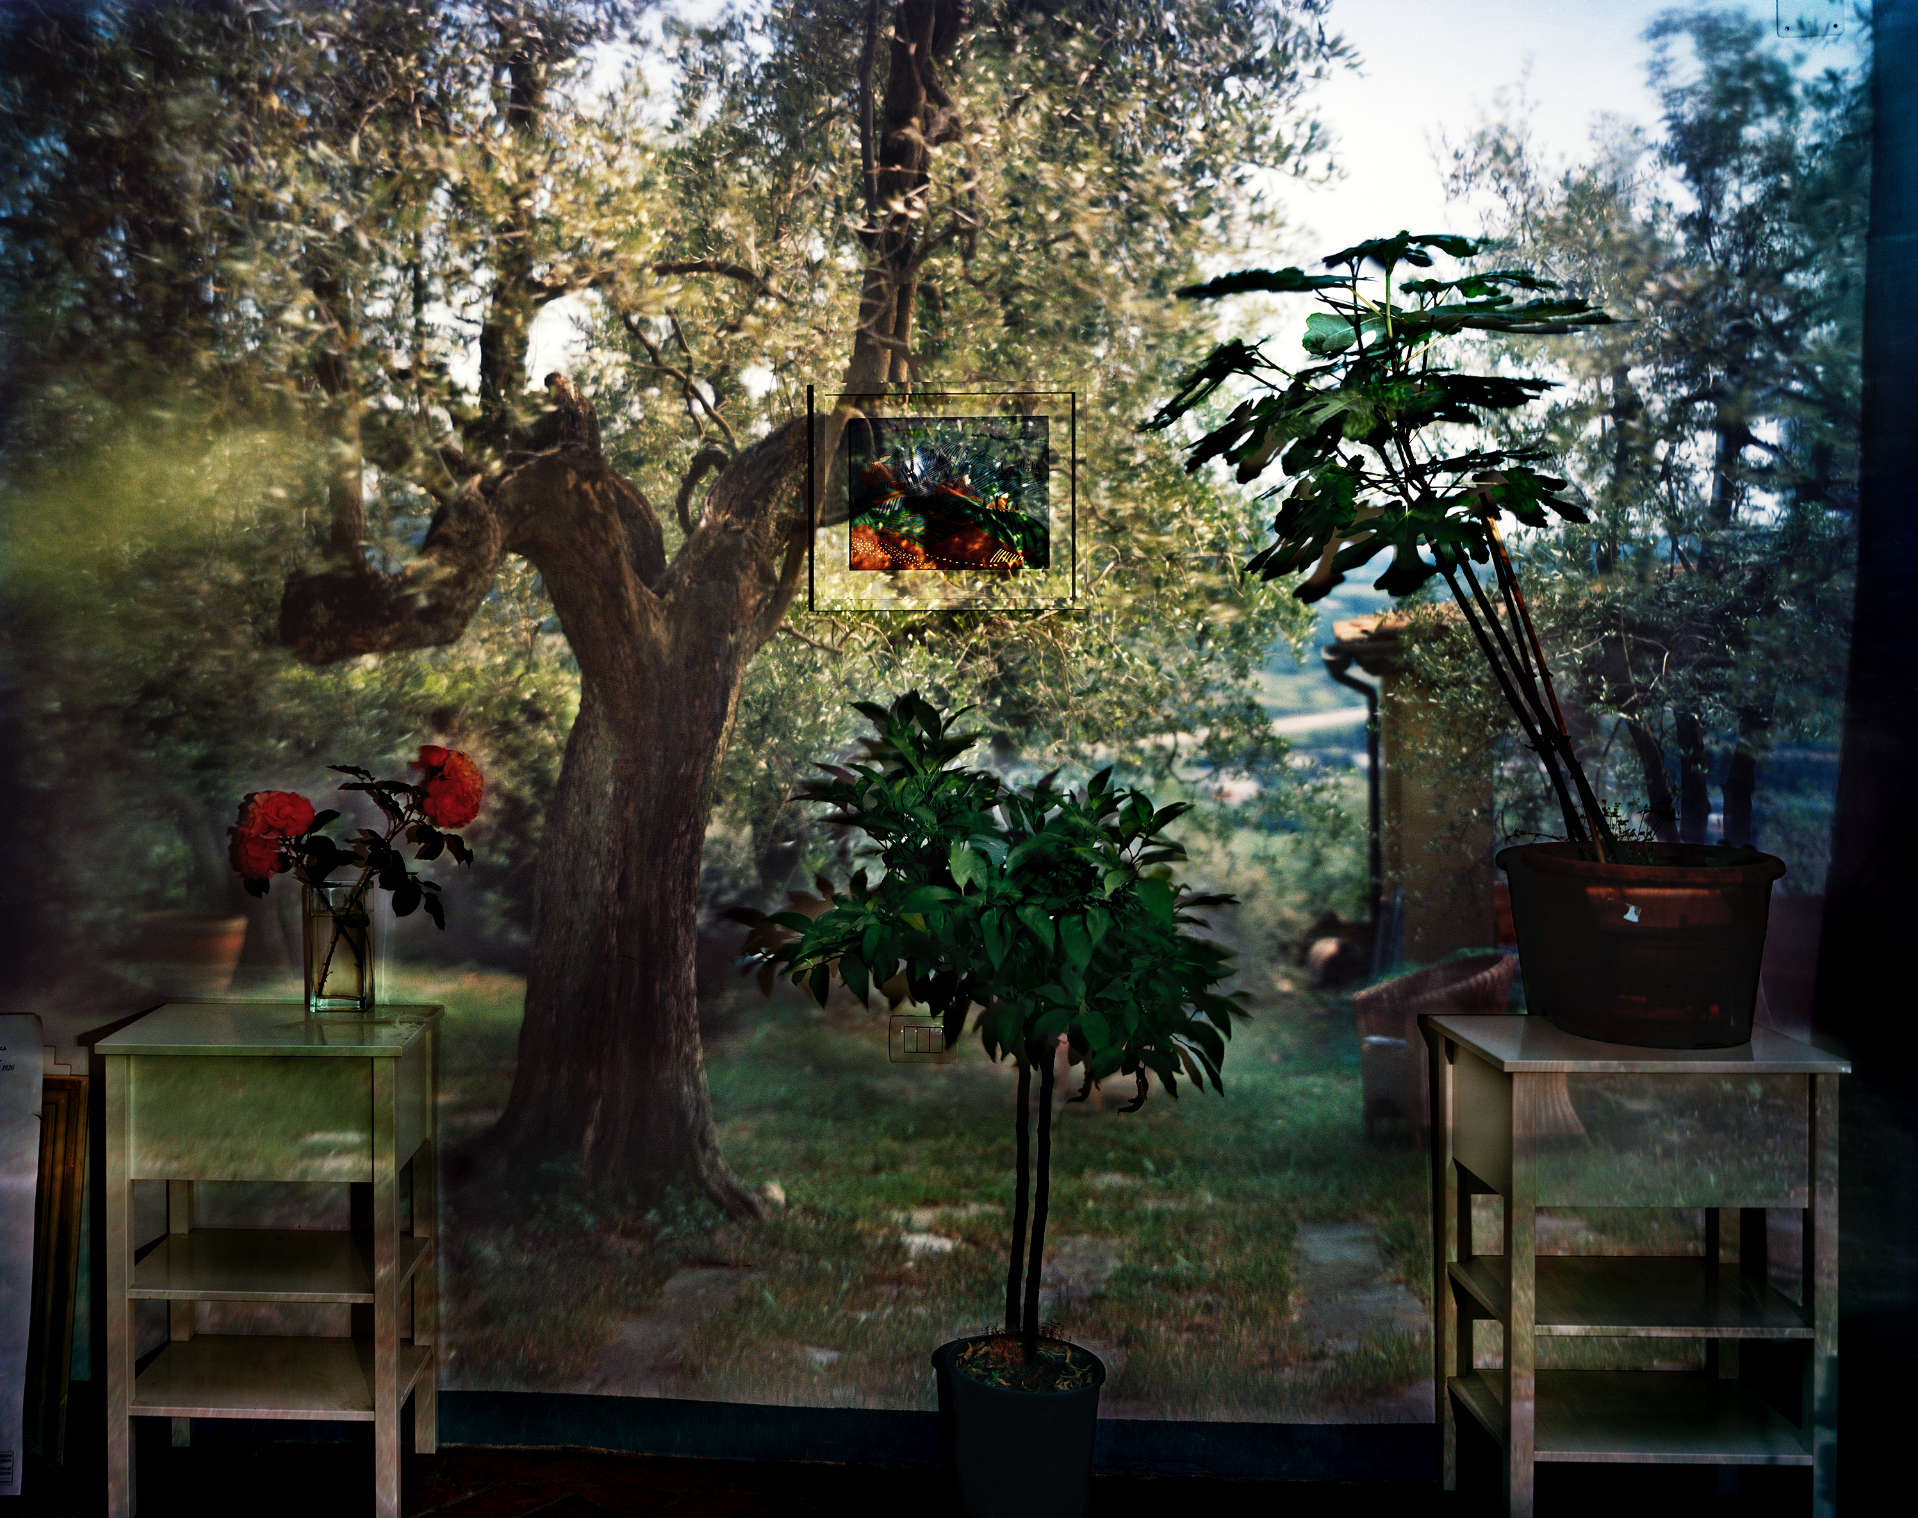 Abelardo Morell, Camera Obscura:  Garden with Olive Tree Inside Room with Plants, Italy,  2009.